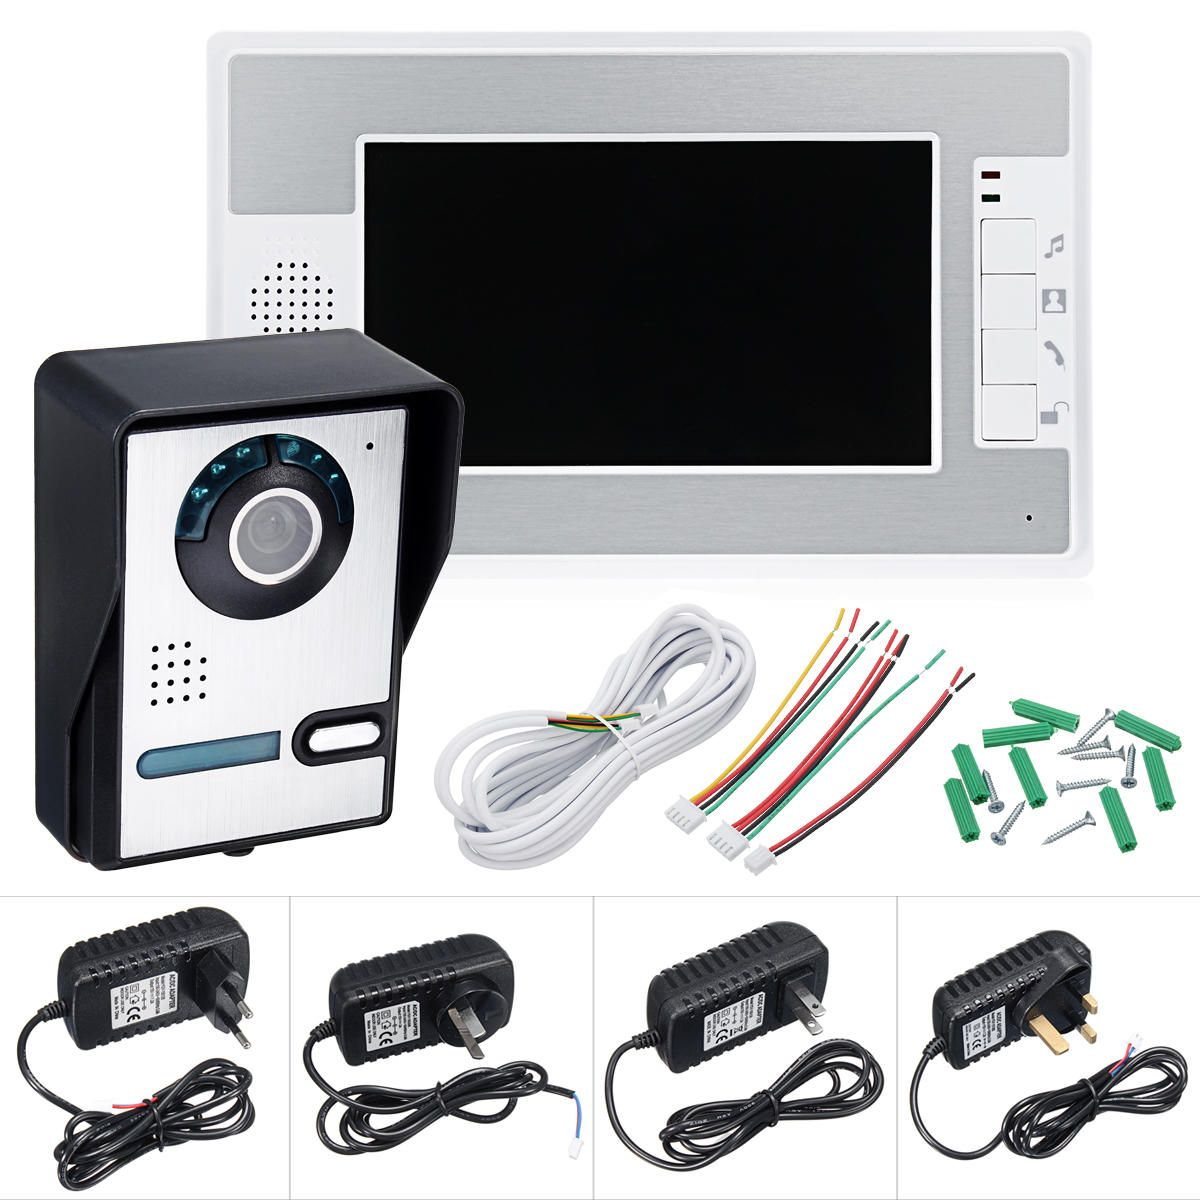 Wired 7 inch Color Video Door Phone Doorbell Intercom Security System with 1 Monitor